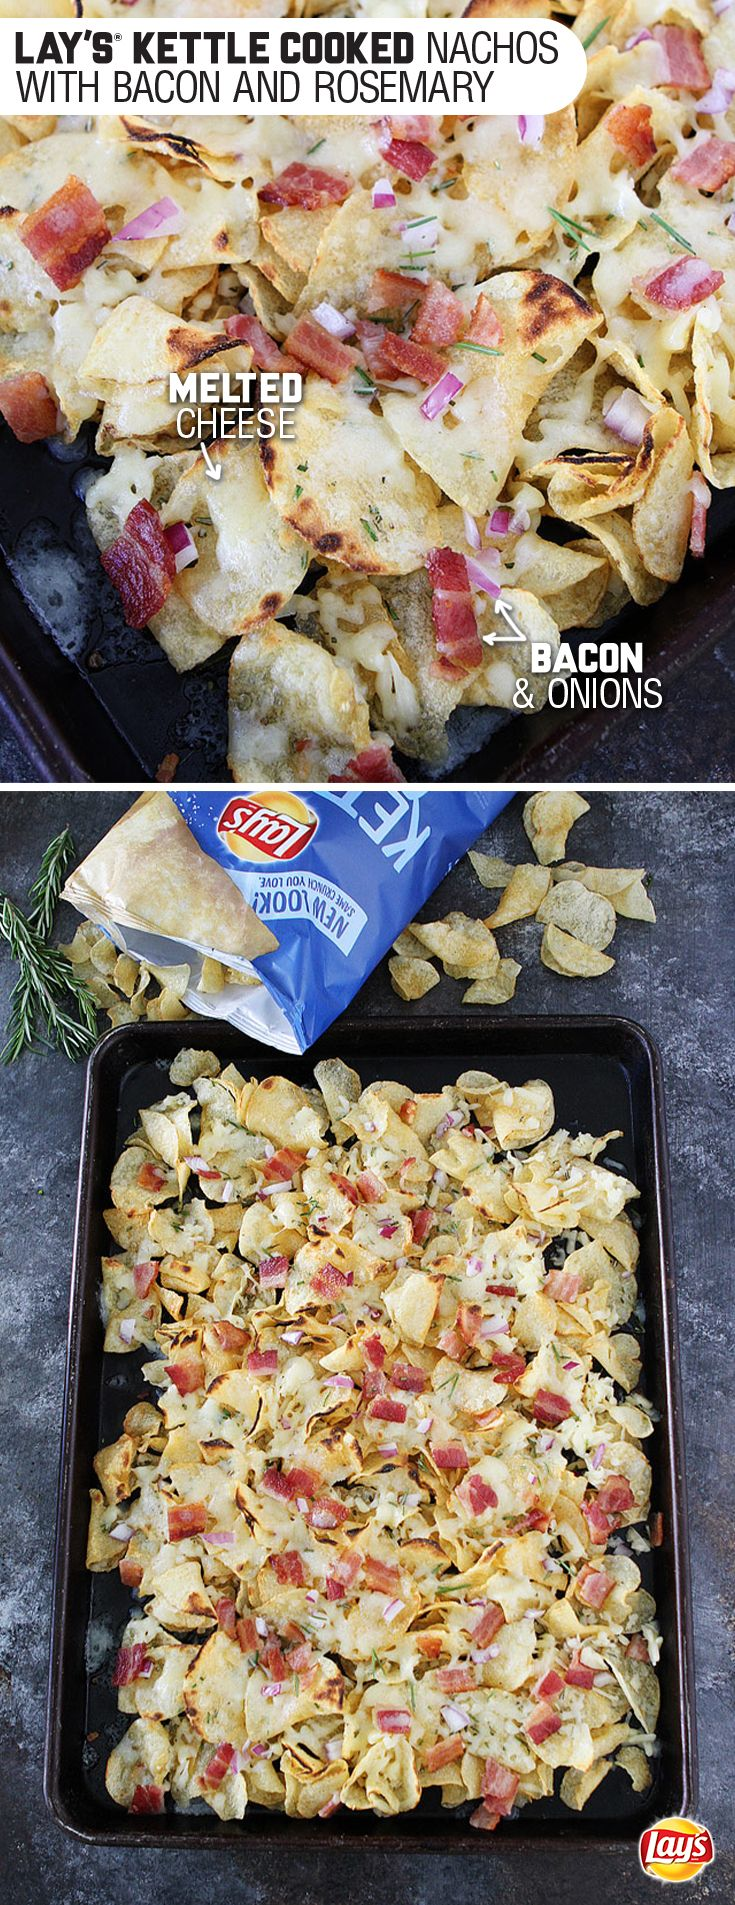 Sponsored by Frito-Lay l Crunchy, savory and simply delicious, Lay's Kettle Chip Nachos are a fuss-free way to up your game for the holidays. Whip these together for a plate full of flavors your favorite people will love. #mingleinabox